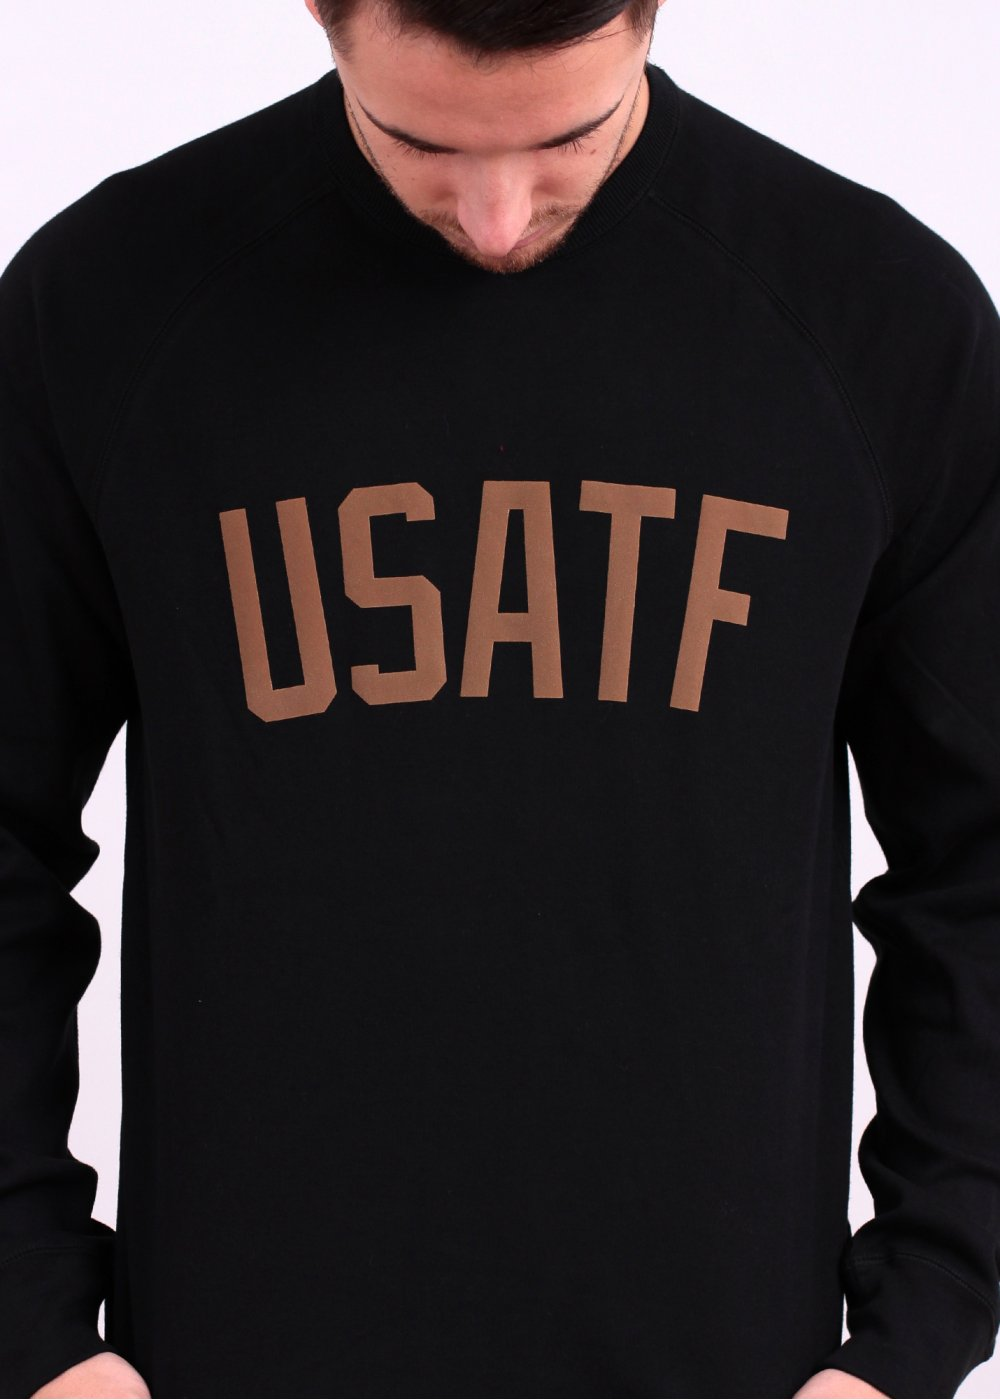 Nike Apparel RU USATF Crew Sweatshirt Black